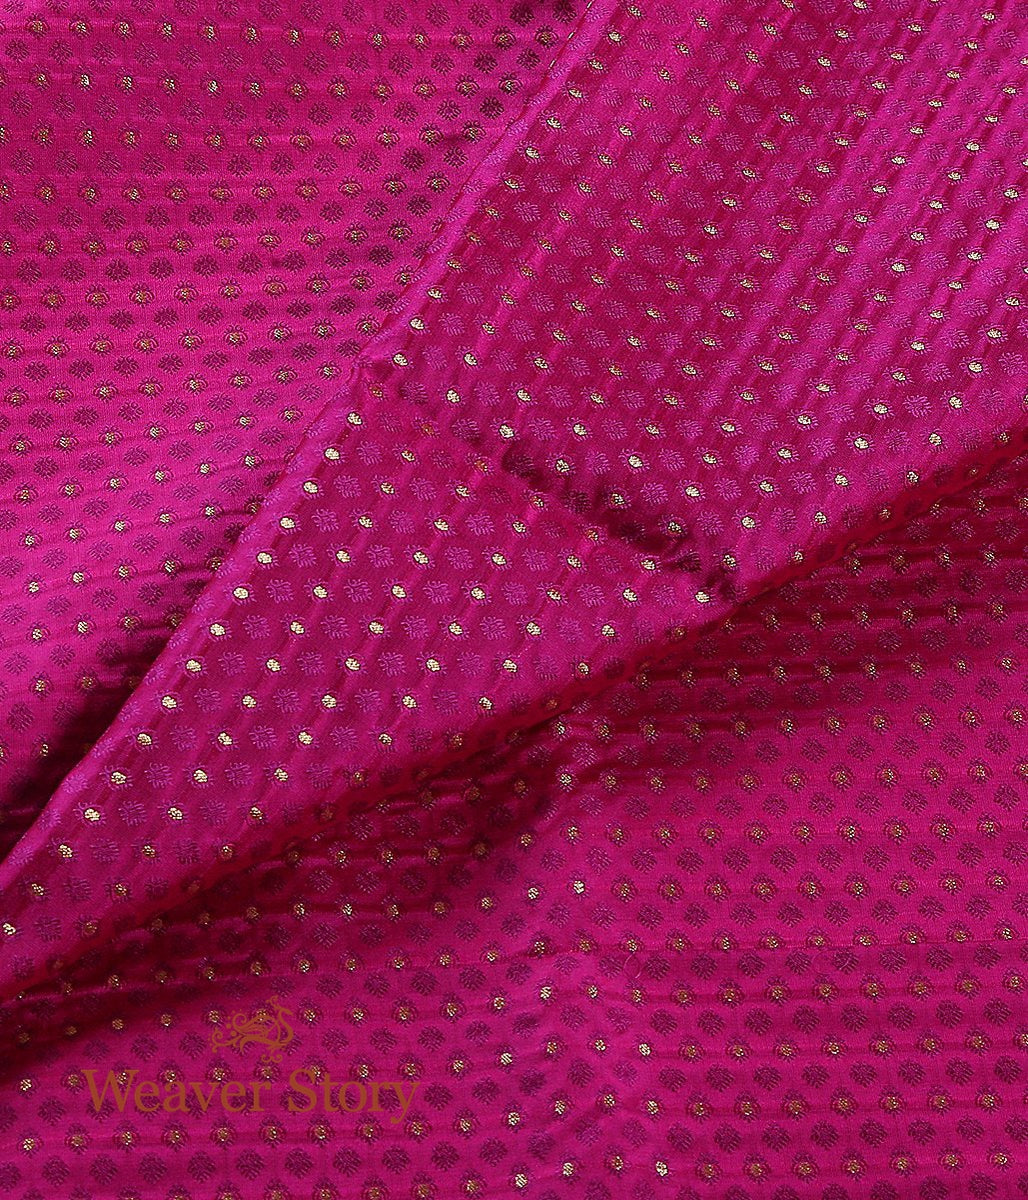 Handwoven Hot Pink Tanchoi Fabric